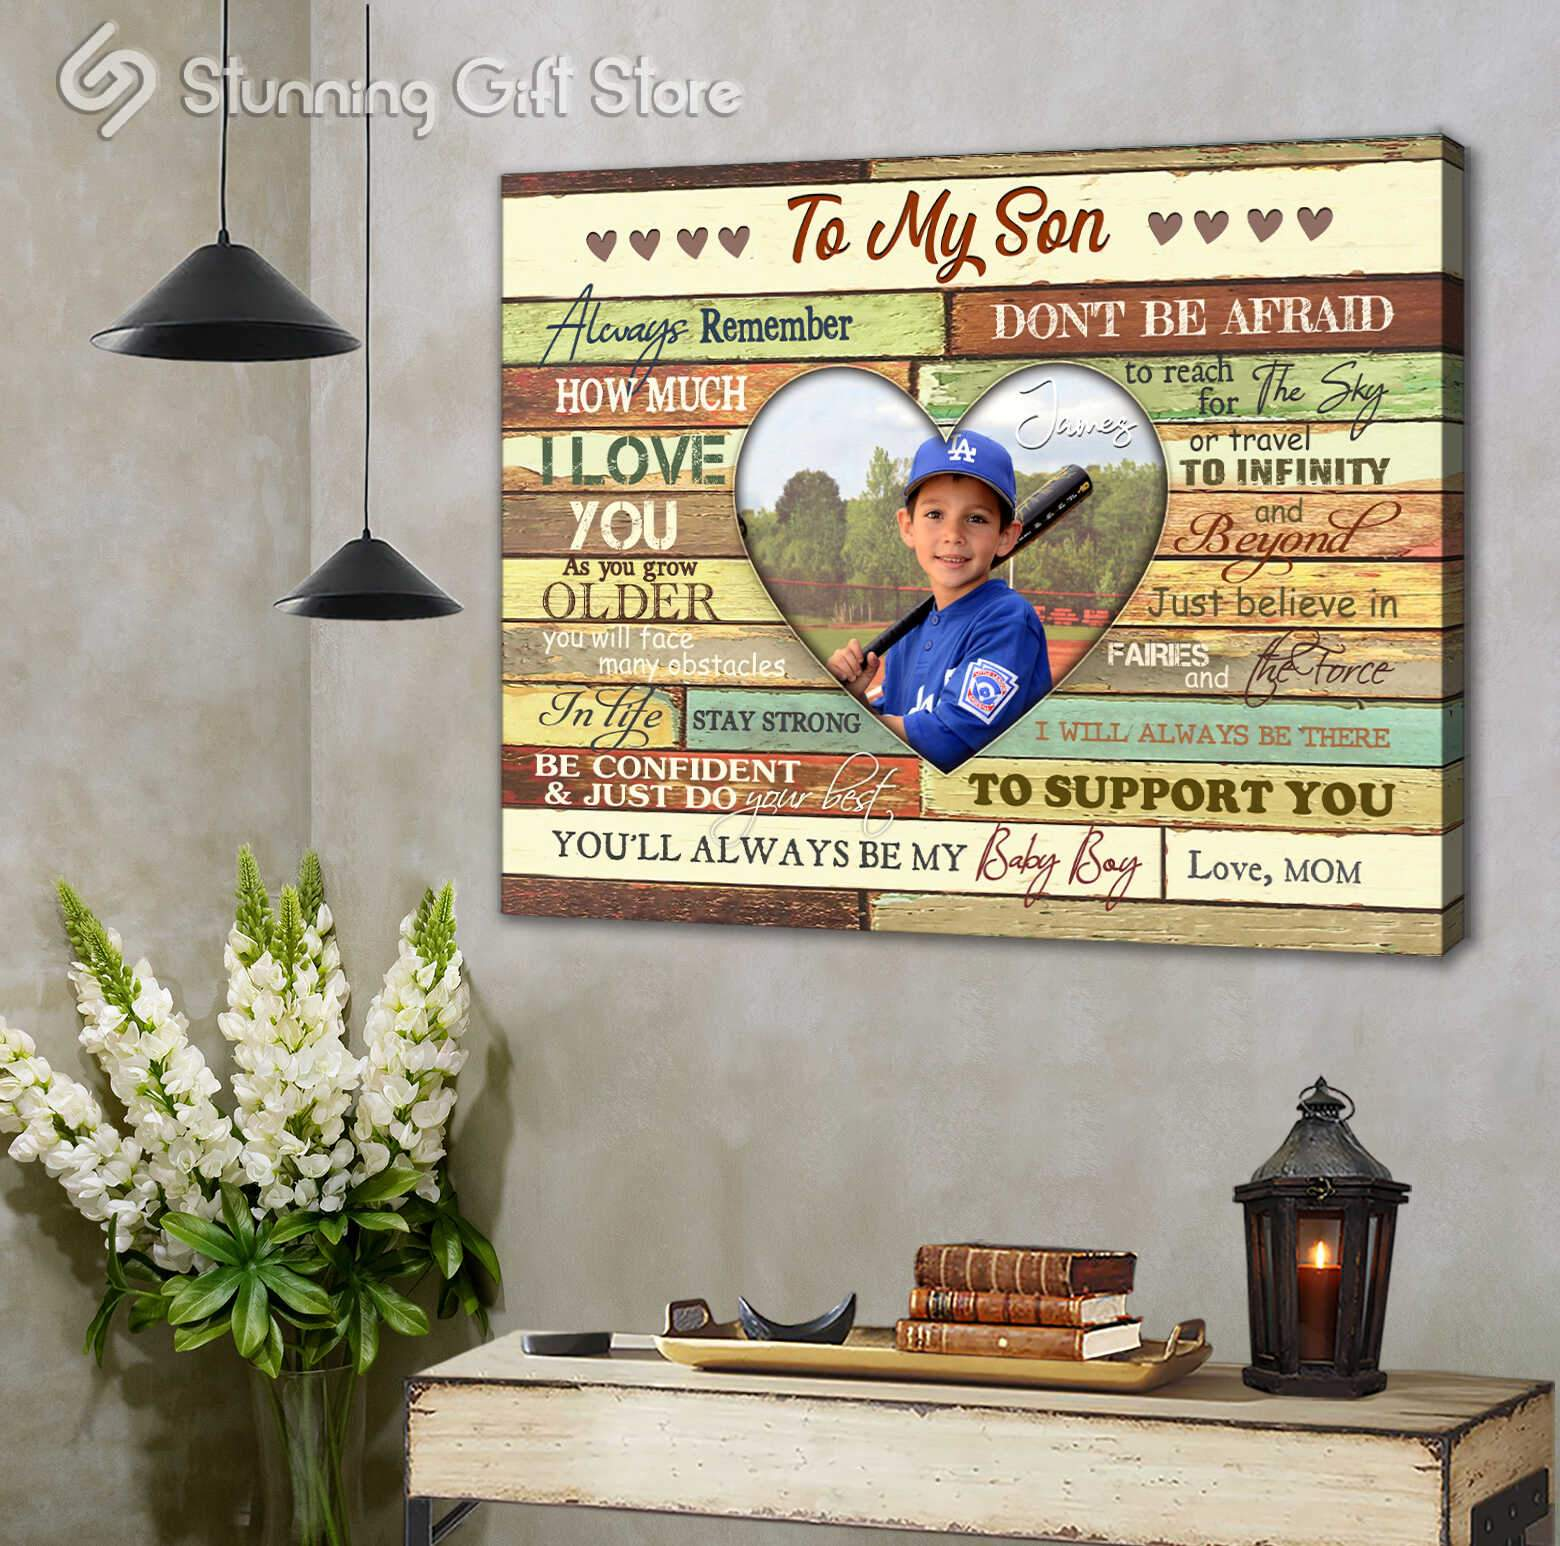 Gift for son   Graduation gifts   Best graduation gifts